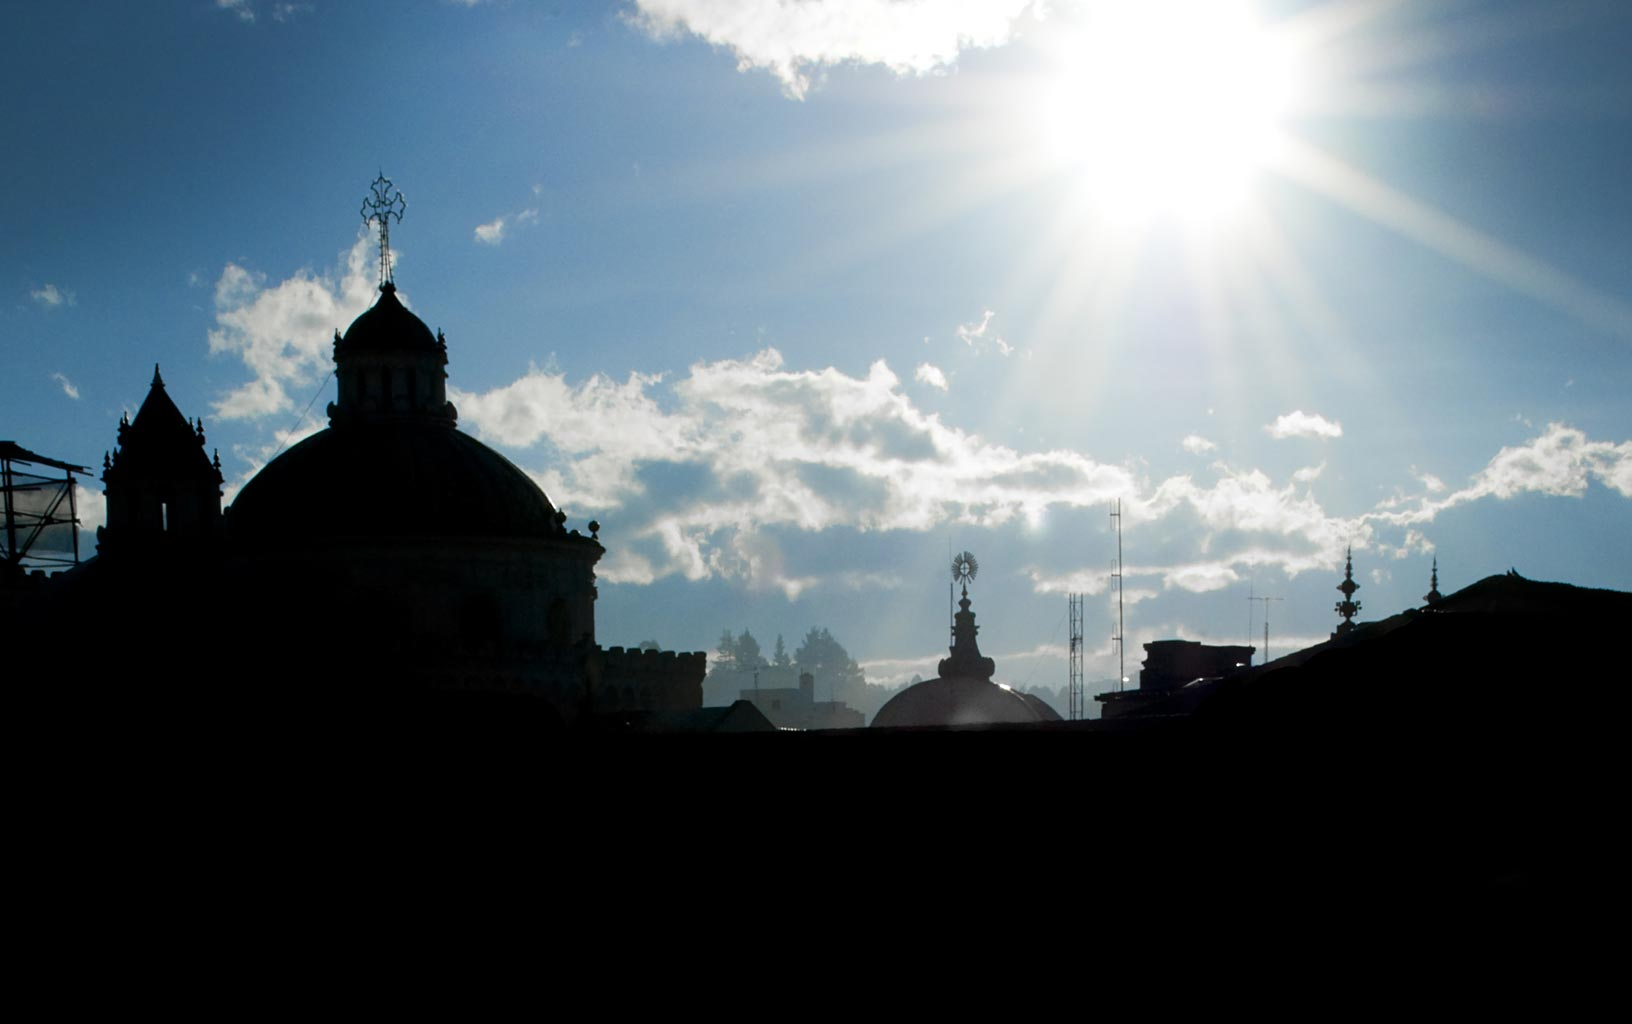 Trips to Quito